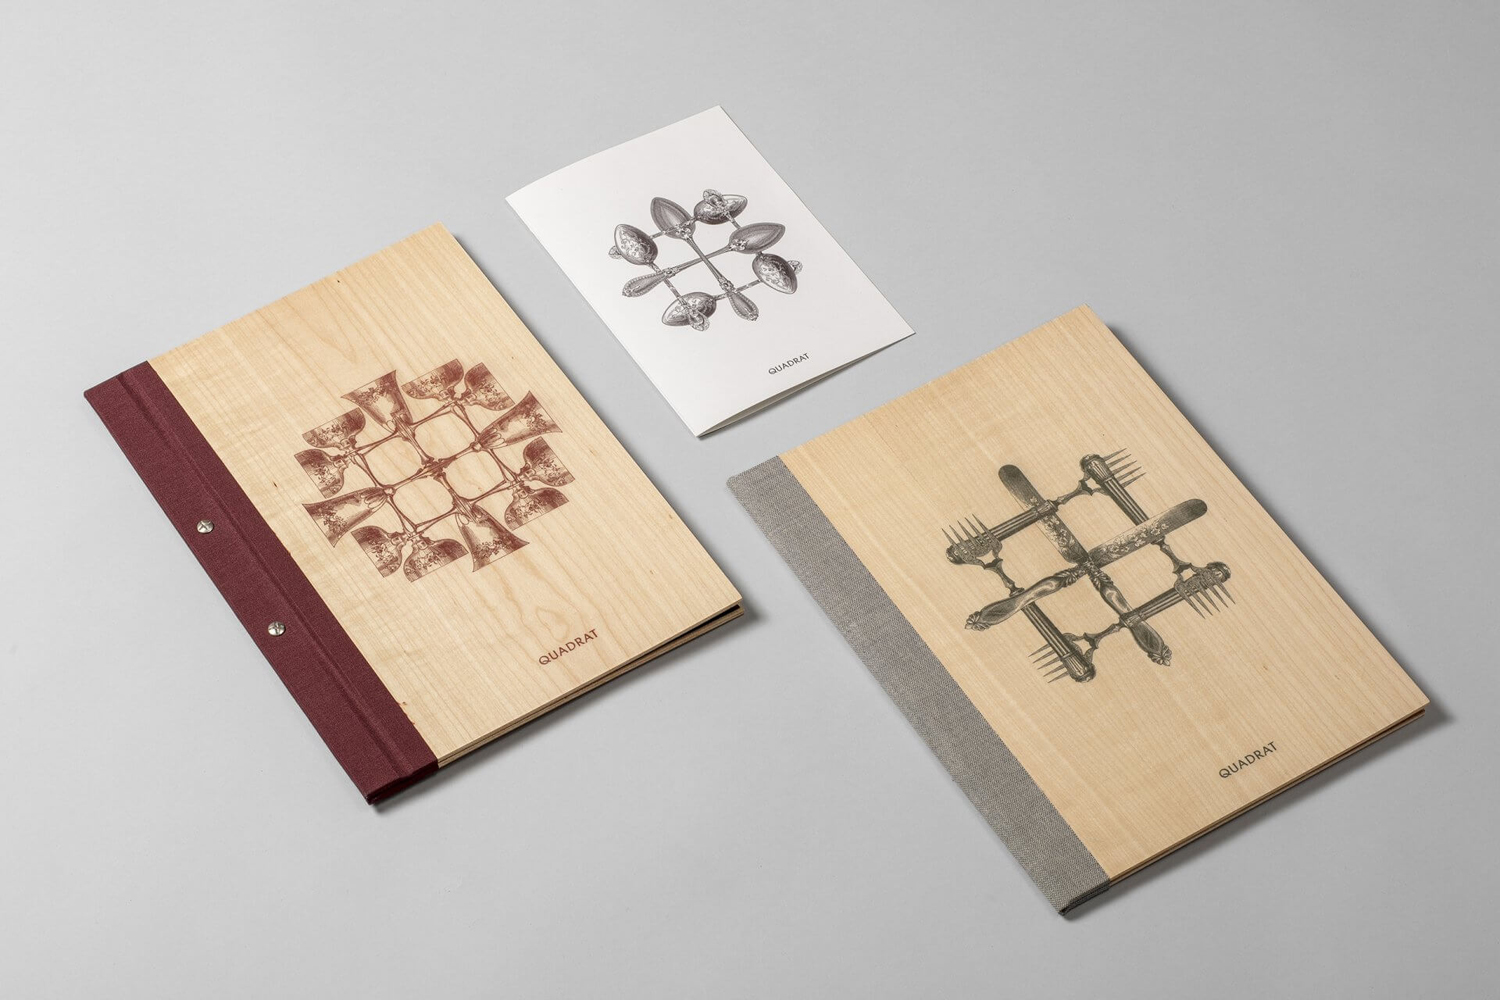 Brand identity and wood and fabric menu covers designed by Mucho for Spanish 5-star hotel Sant Francesc.